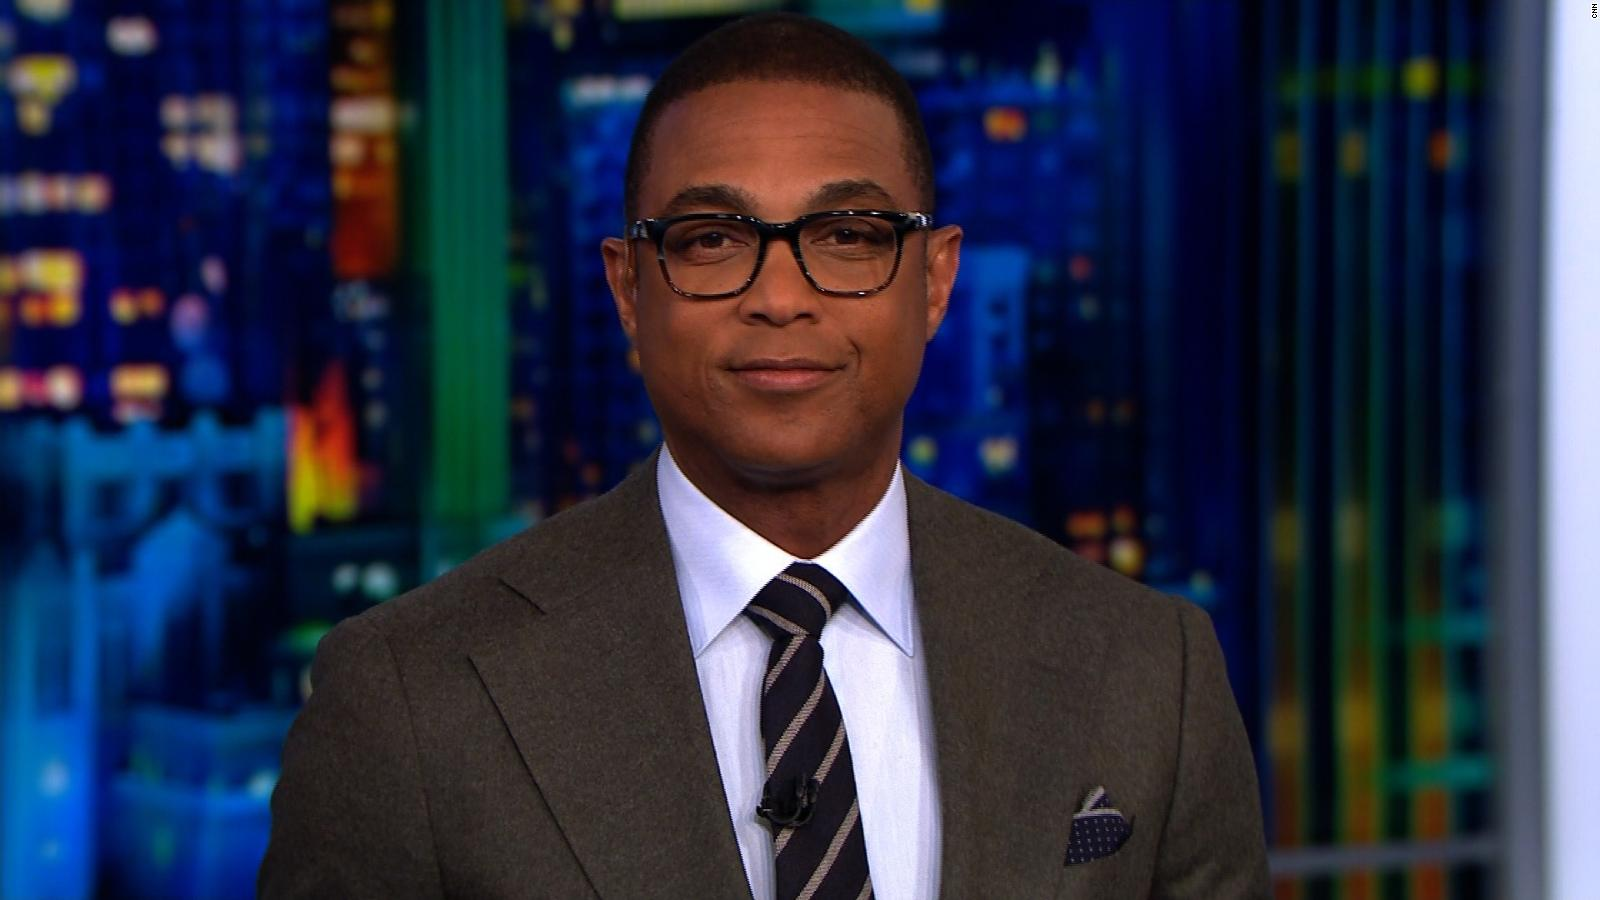 Don Lemon says on CNN the biggest terror threat to the US is white men Don Lemon says on CNN the biggest terror threat to the US is white men new pictures